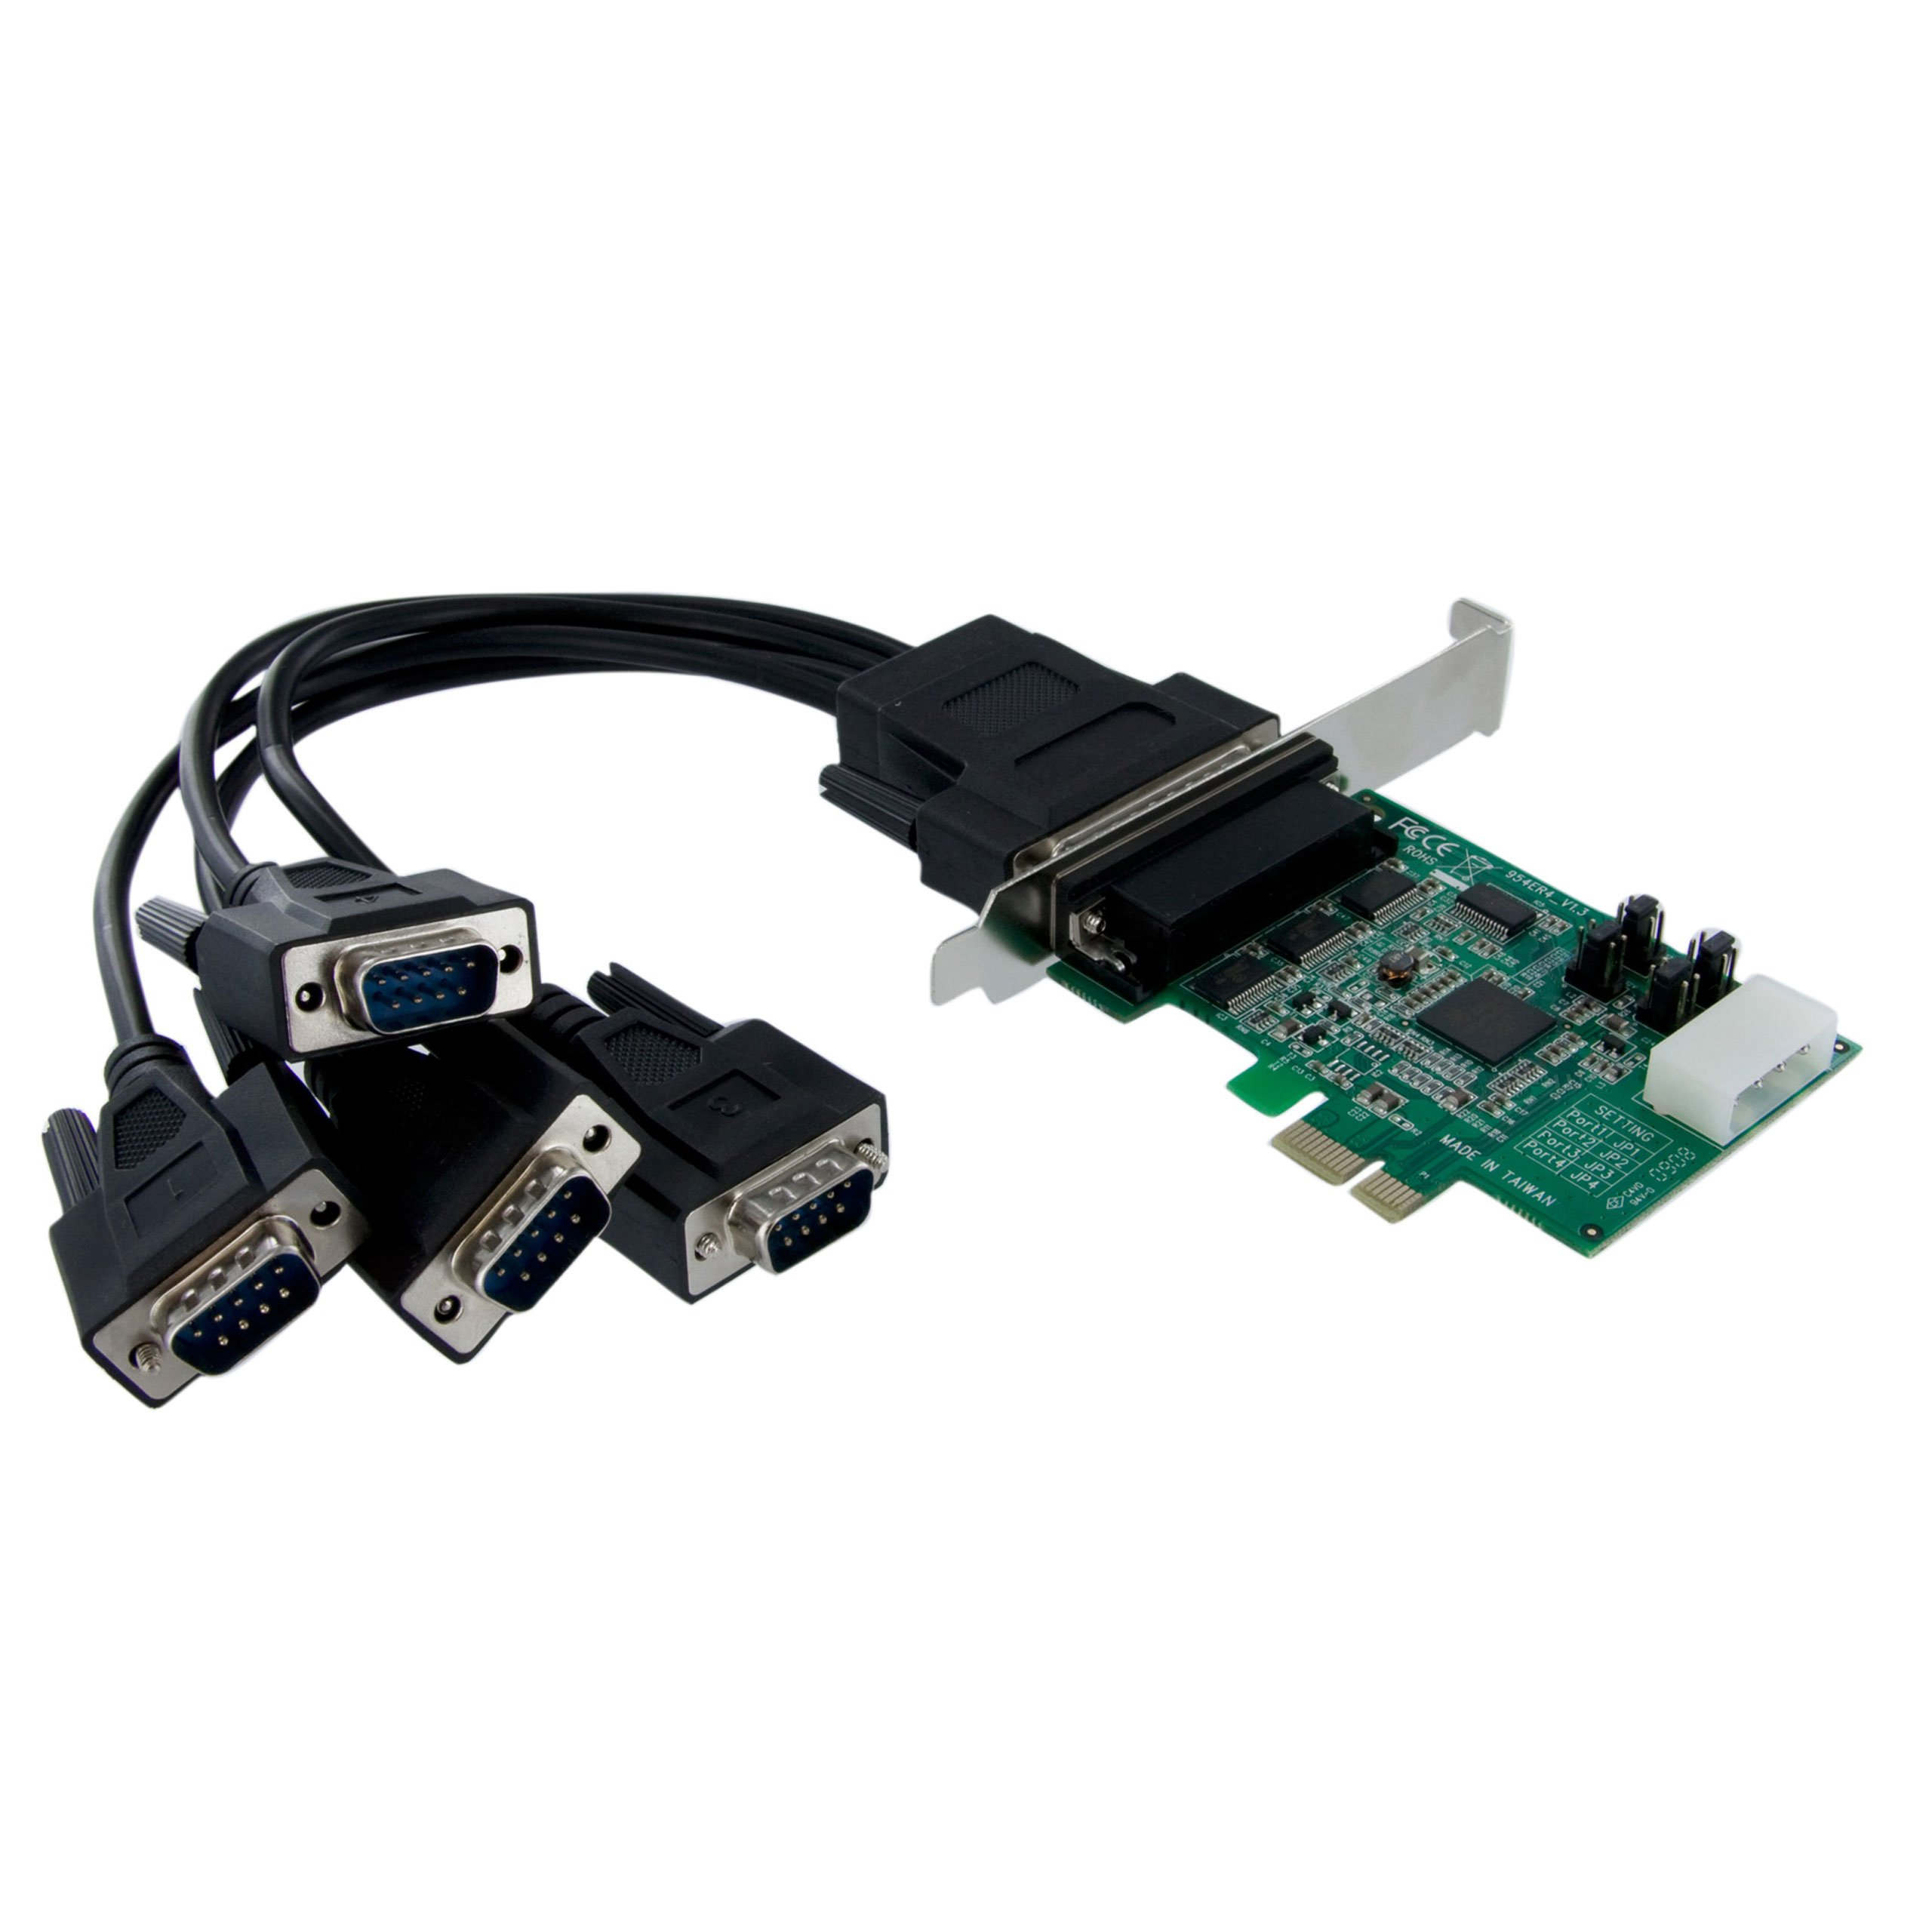 4 Port Native PCI Express RS232 Serial Adapter Card with 169